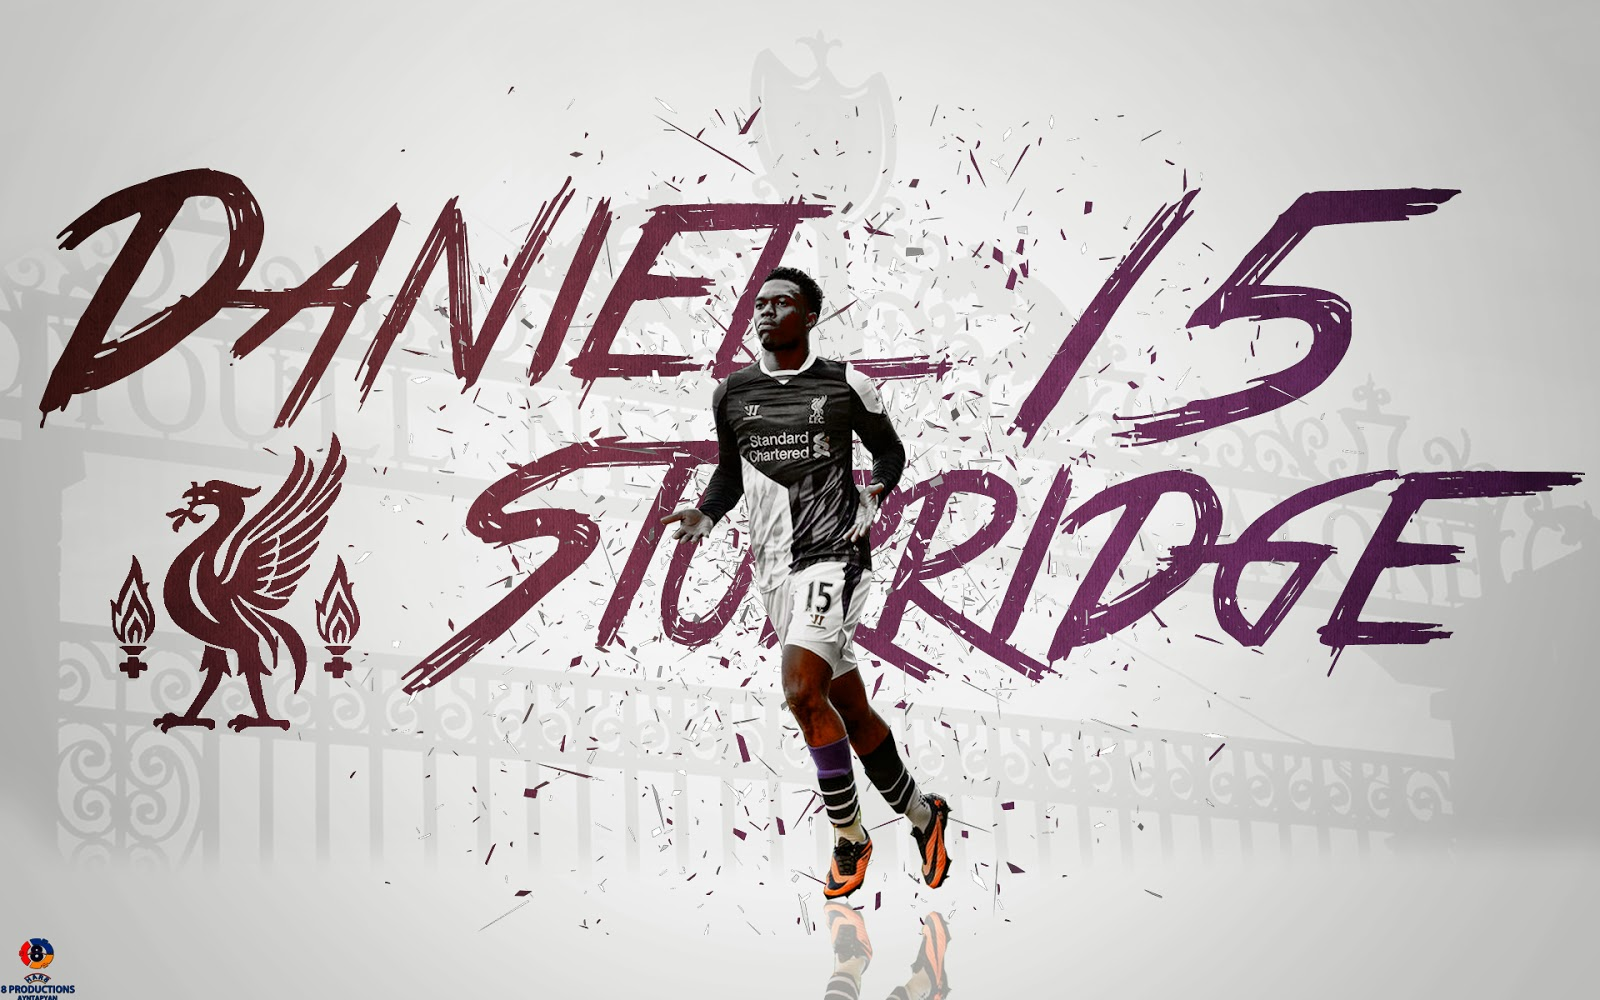 8 Productions: Daniel Sturridge Liverpool 2013/14 Wallpaper